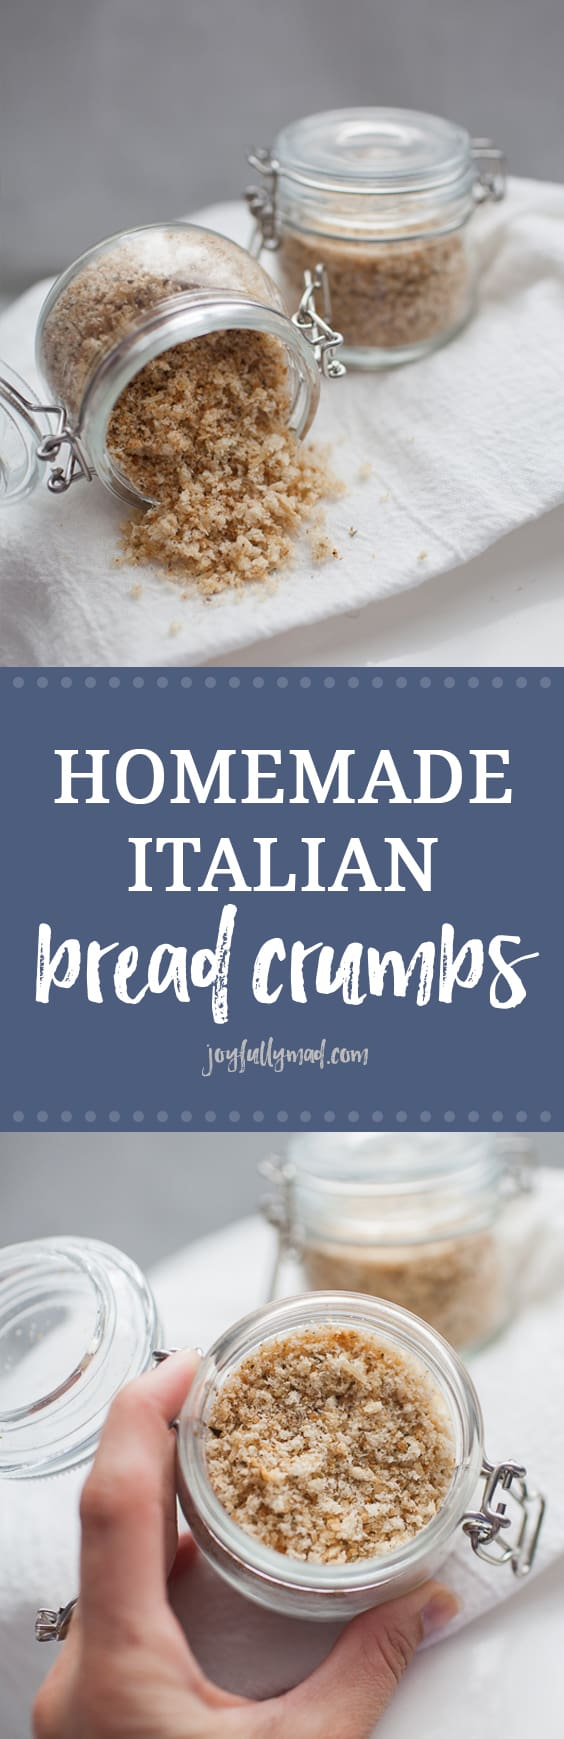 Homemade Italian Bread Crumbs are a pantry staple that you can make anytime using stale or toasted bread! It's the perfect way to customize your dish with fresh bread crumbs. homemade bread crumbs | homemade basics | pantry basics | stale bread | bread crumbs | breaded chicken